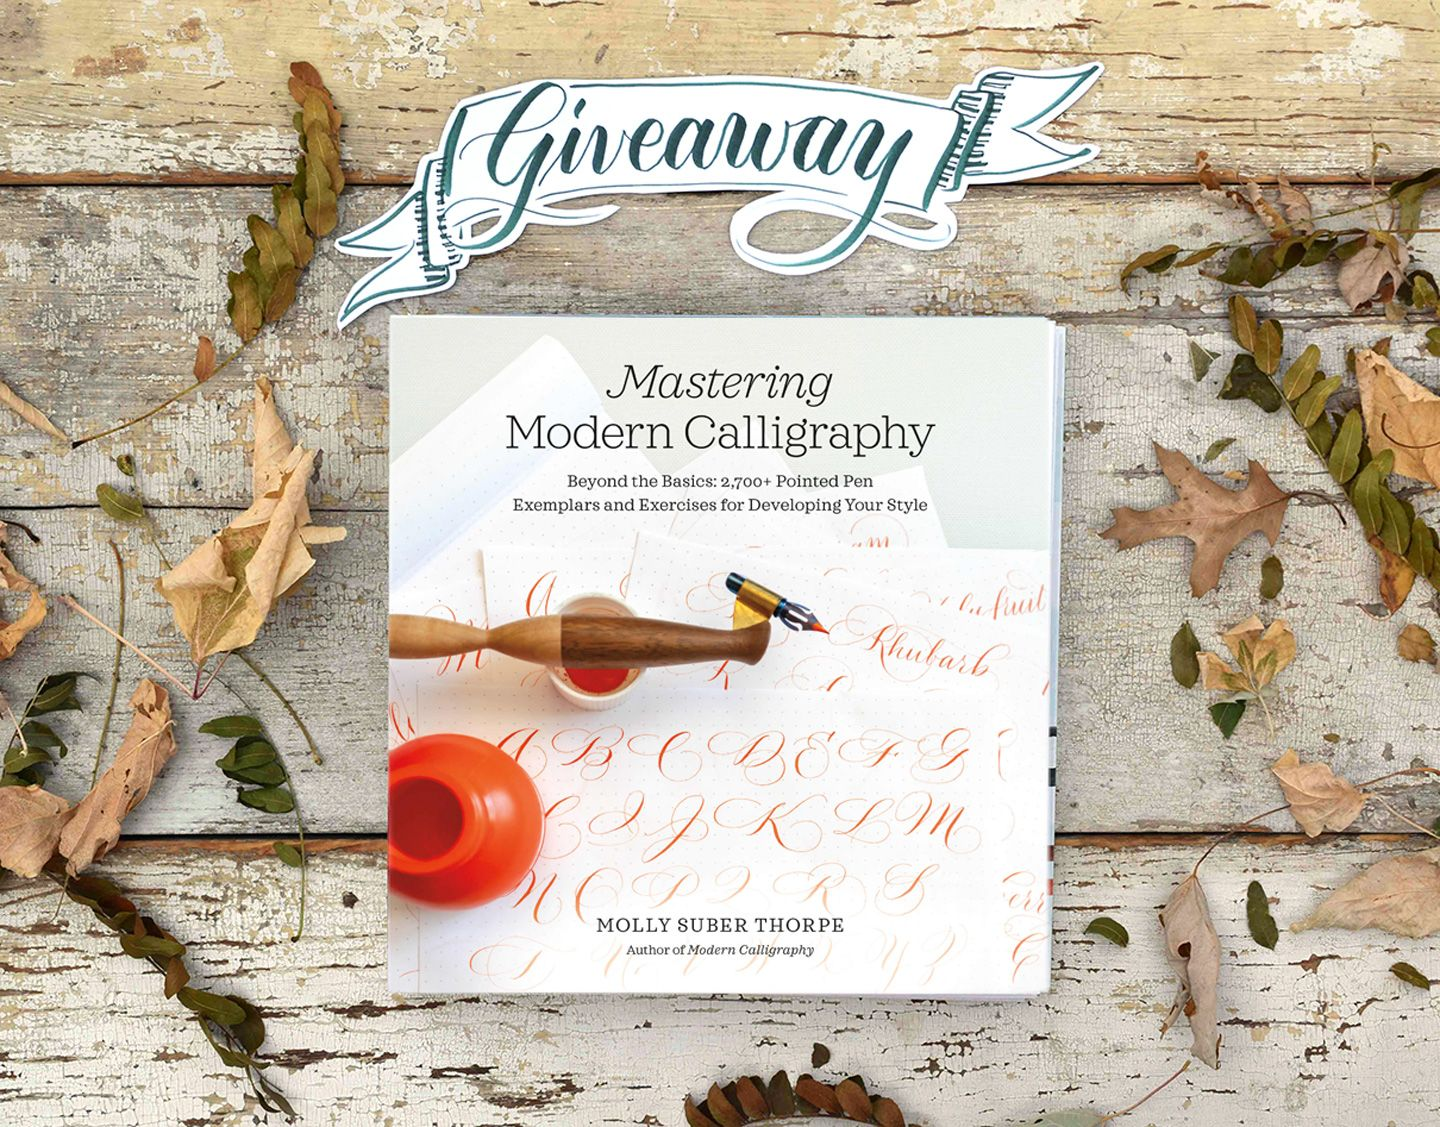 Mastering Modern Calligraphy Book Review